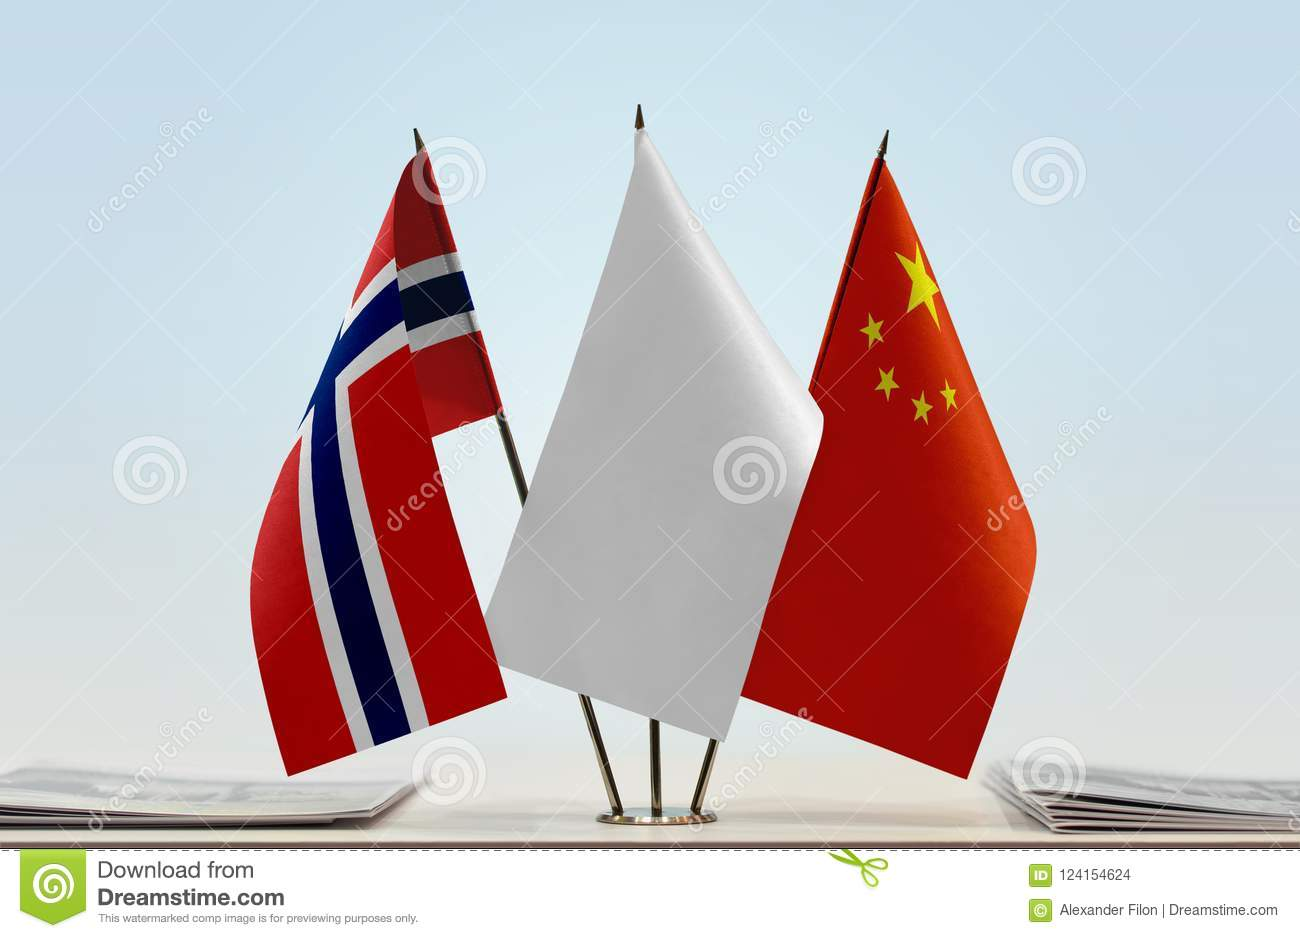 Flags of Norway and China